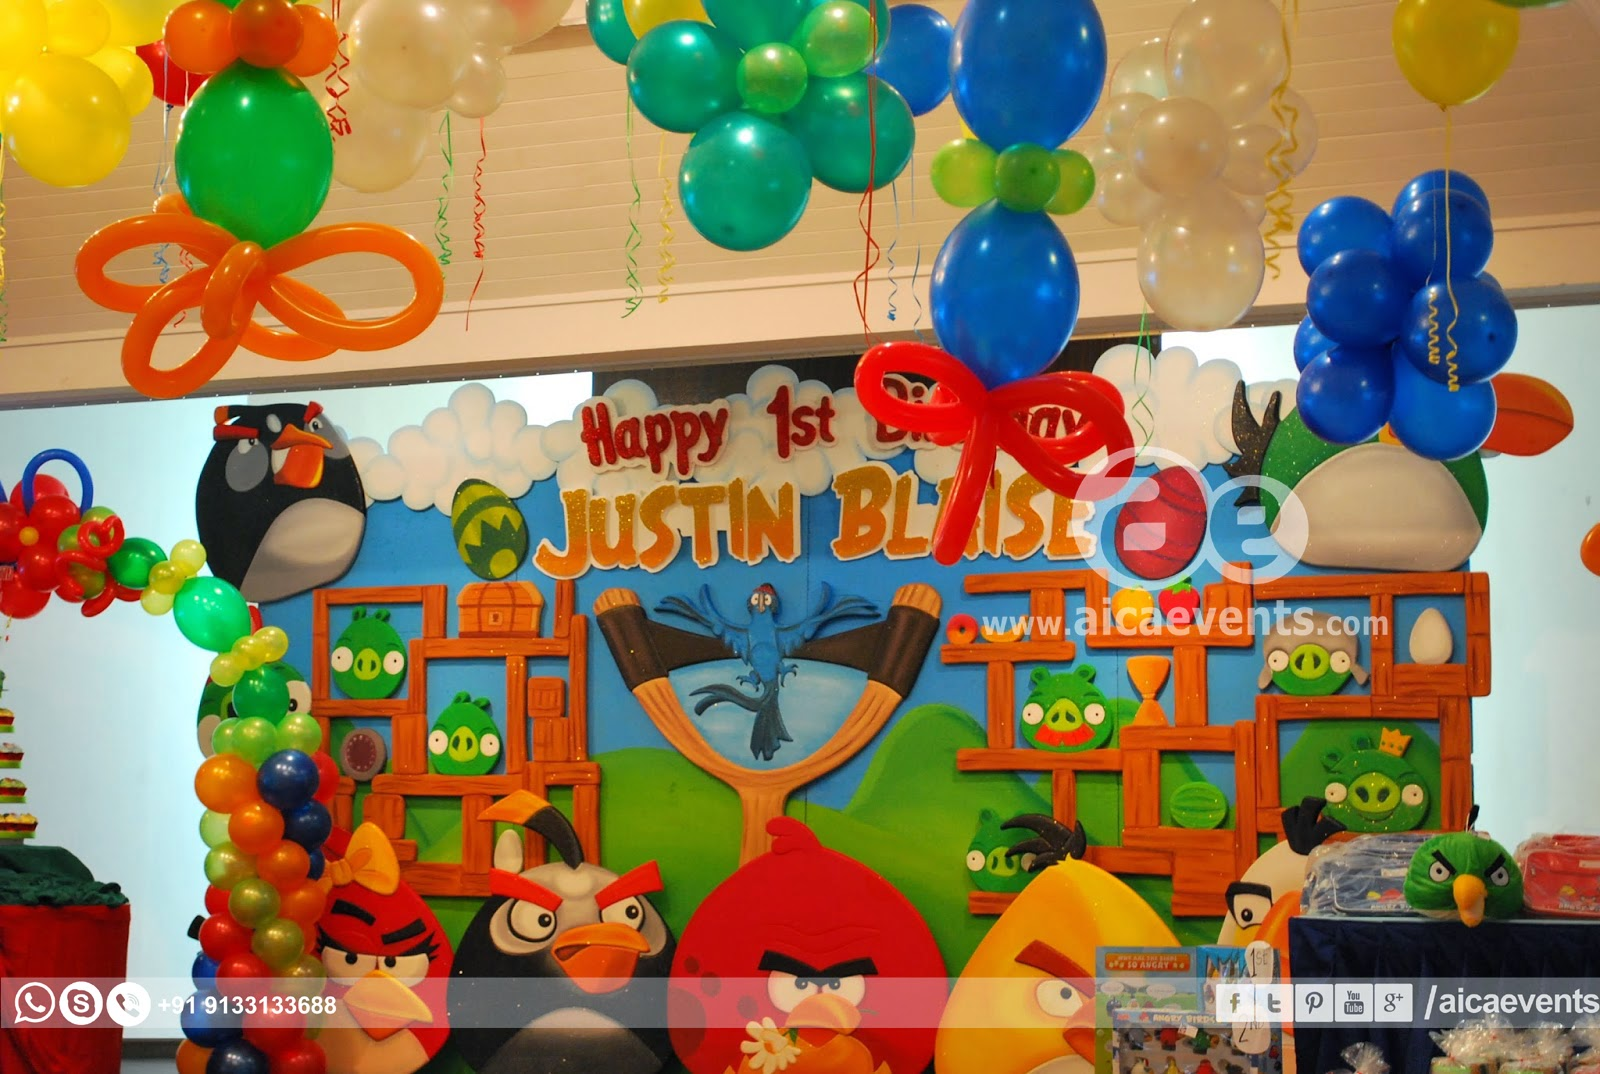 ... aicaevents angry bird theme decors for birthday parties ... & Angry Birds Birthday Party Supplies - Birds Of Prey